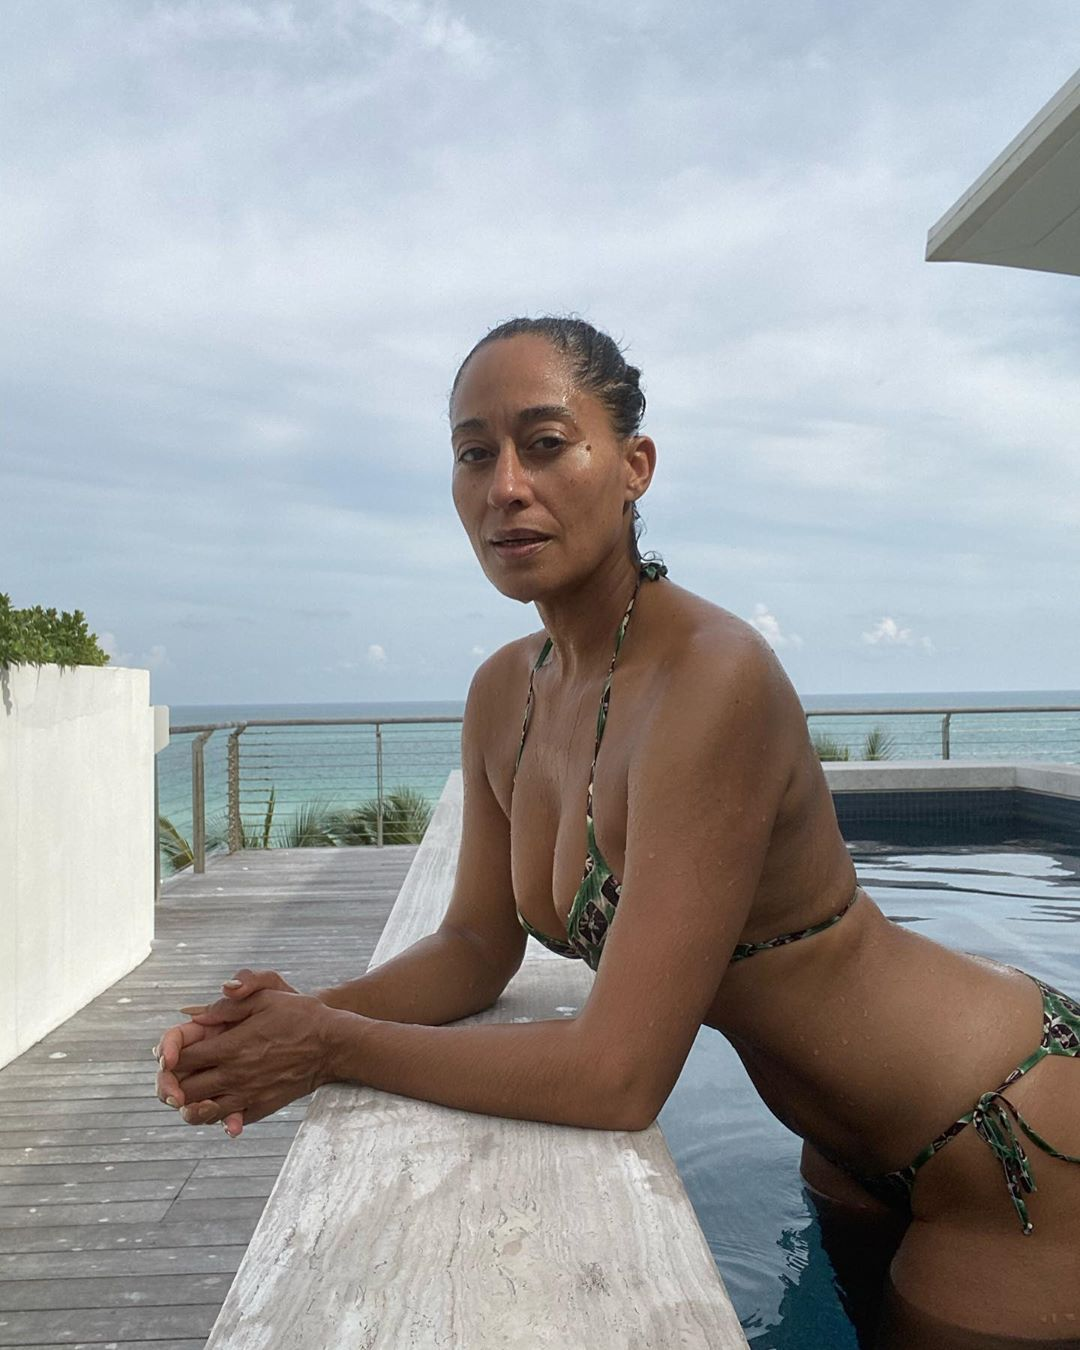 At 47, Tracee Ellis Ross Just Shared A Ton Of Unretouched Bikini Pics To Celebrate Her Birthday